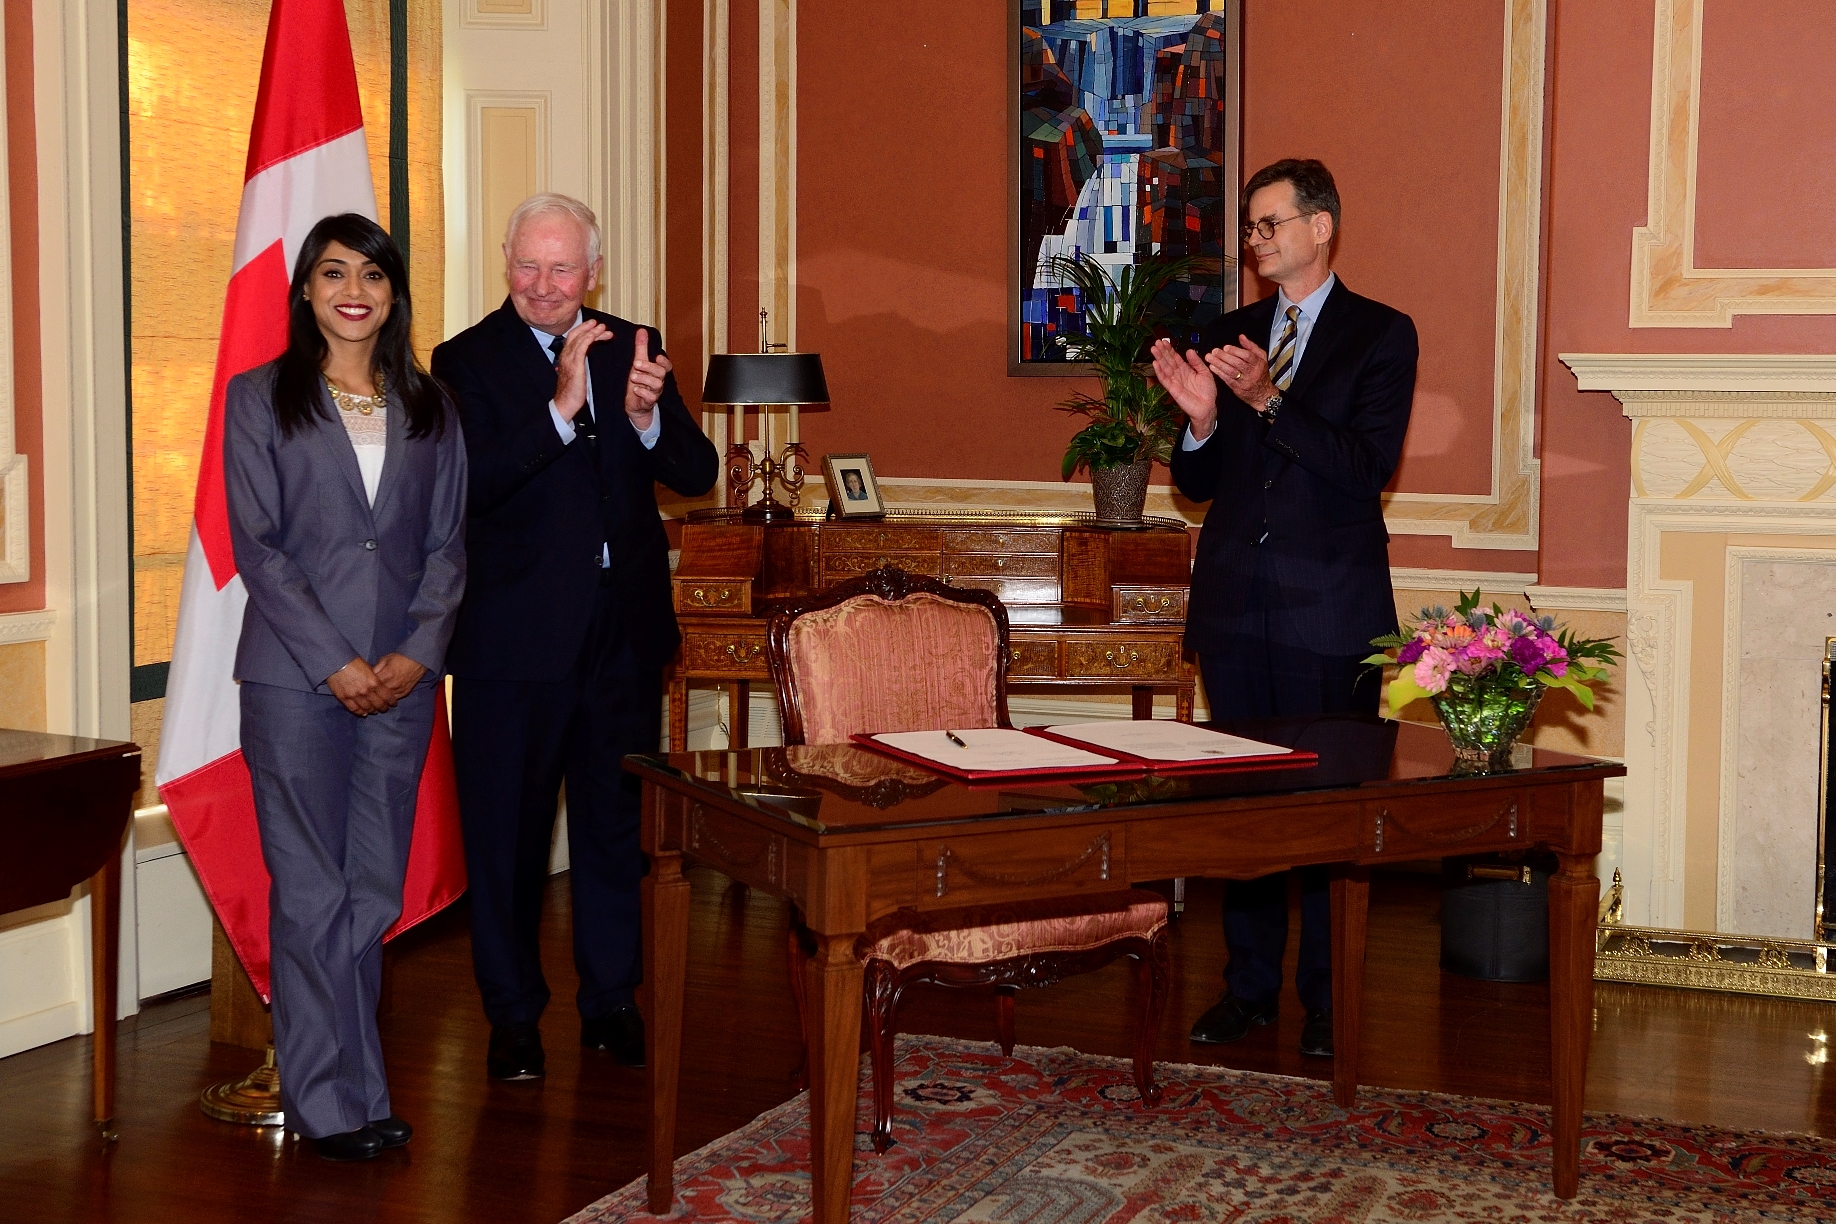 The Honourable Bardish Chagger is the first woman to hold this position in Canadian history.